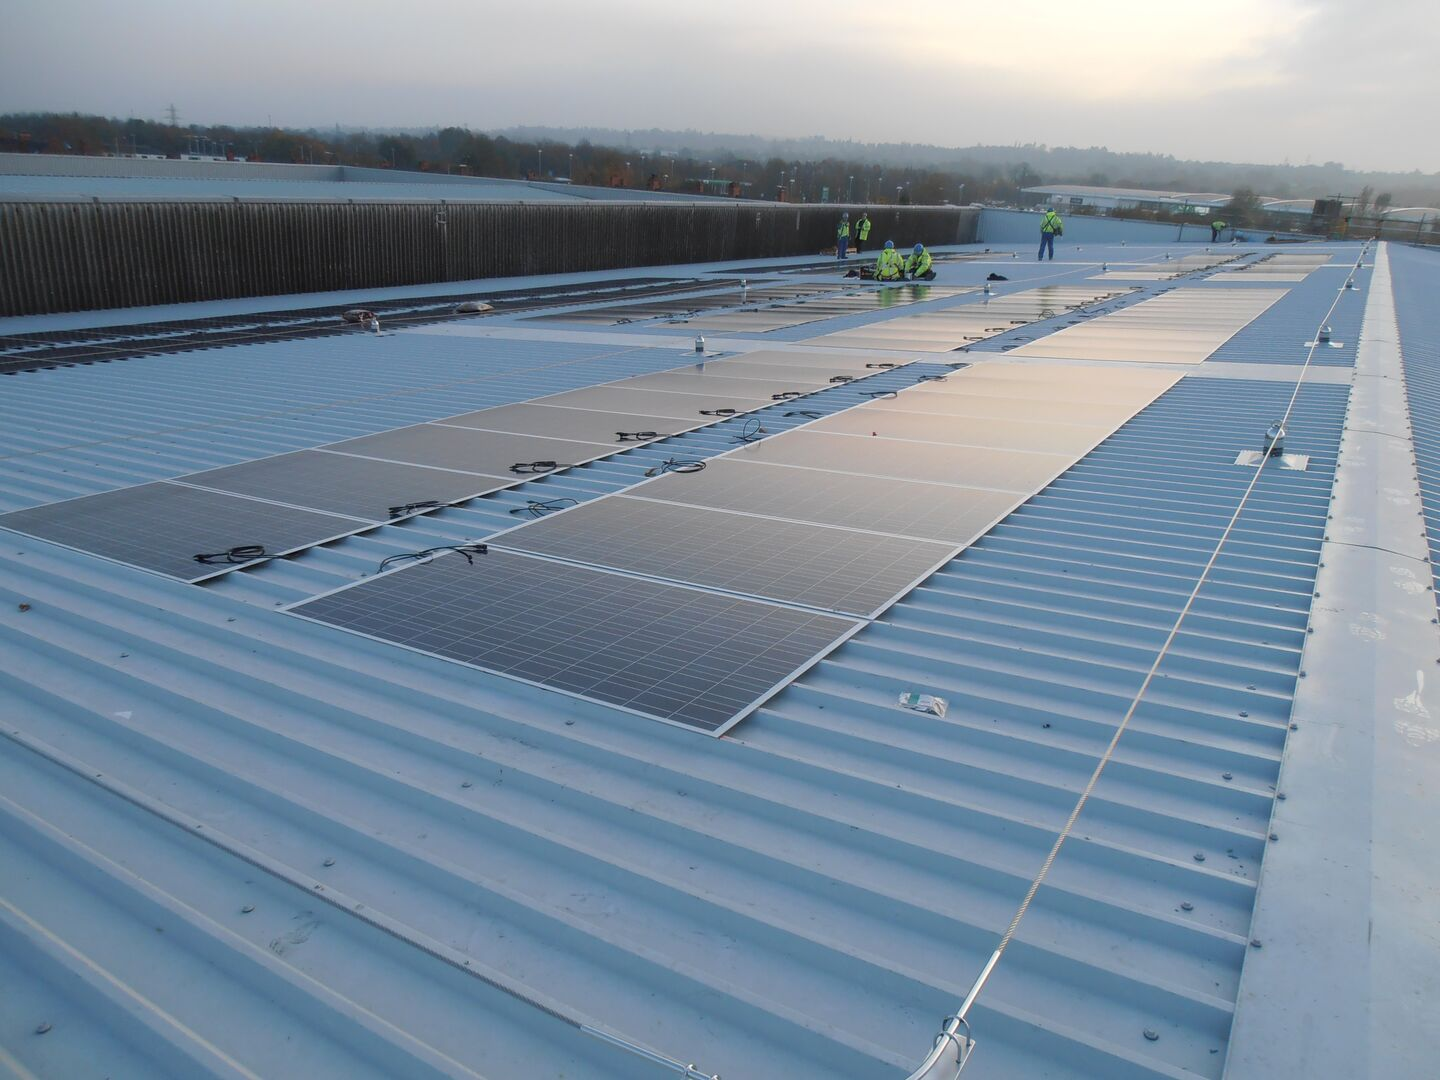 Deeside Leisure Centre using Tata Steel Trisobuild roof cladding